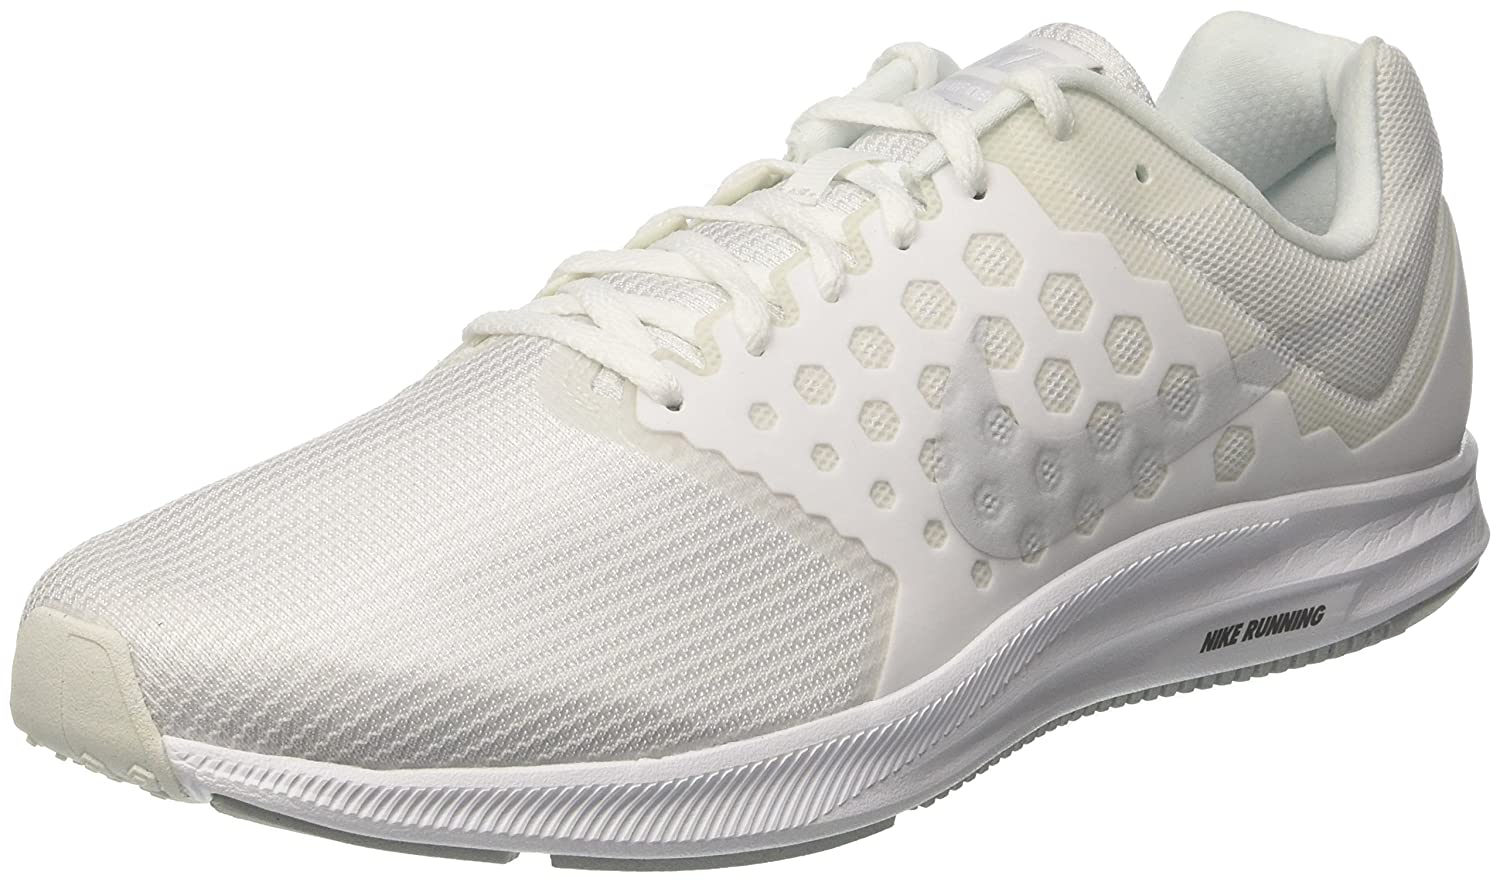 Nike Downshifter 7, Zapatillas de Running para Hombre 41 EU|Blanco (White/Pure Platinum)